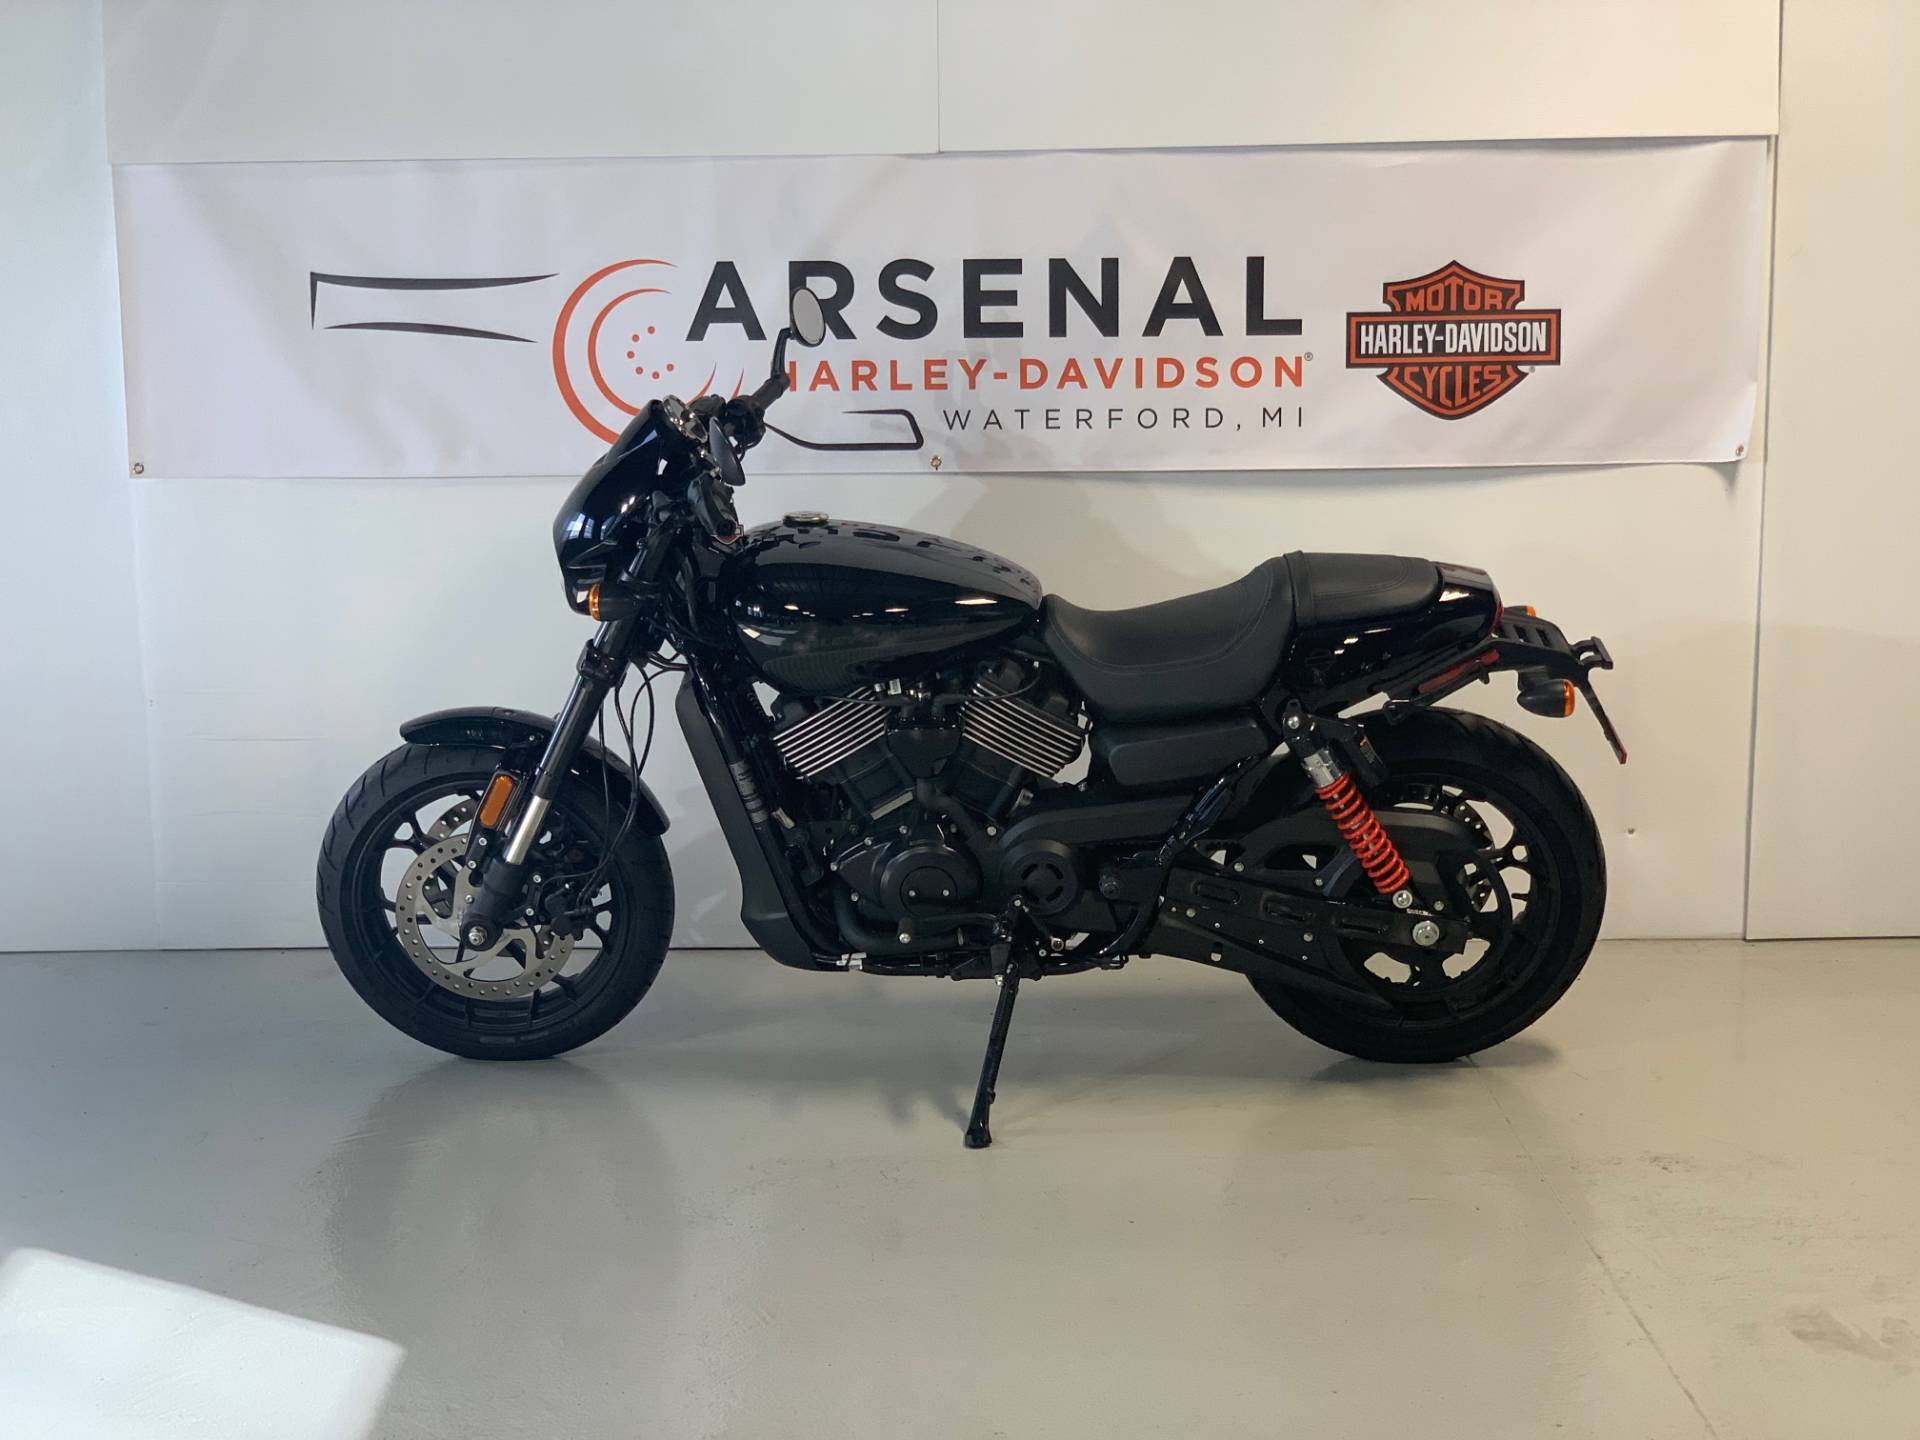 Harley Davidson Michigan >> 2018 Harley Davidson Xg750a In Waterford Michigan